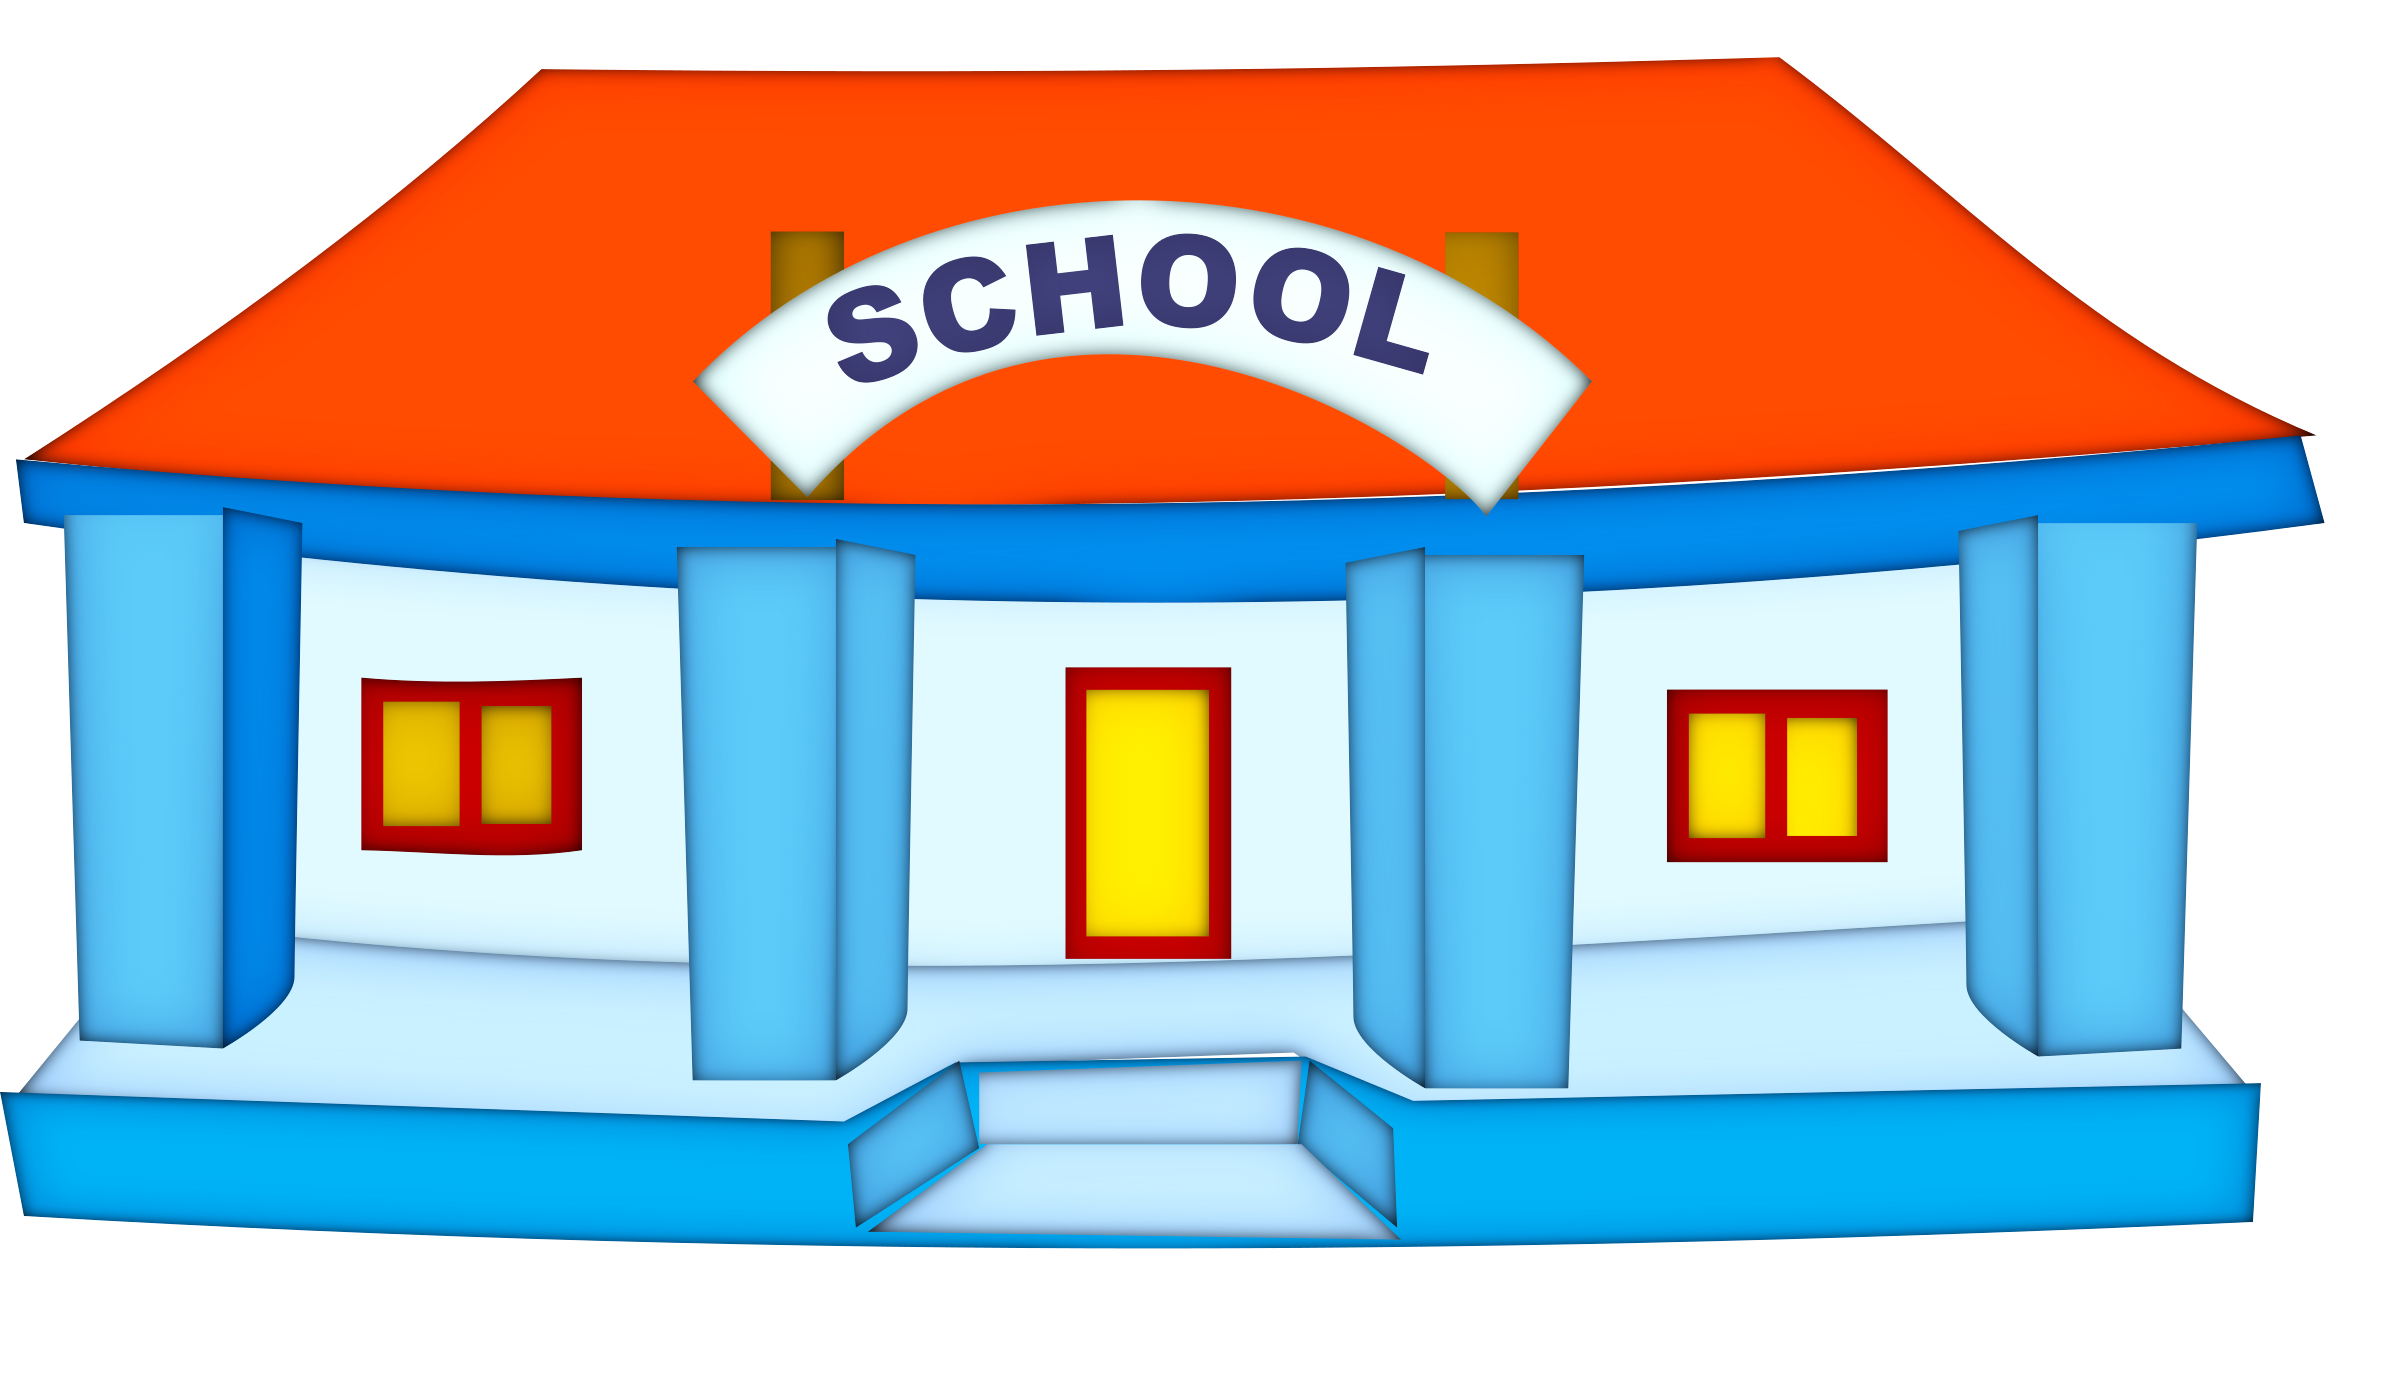 Clipart school building jpg library stock Clipart - school-building jpg library stock